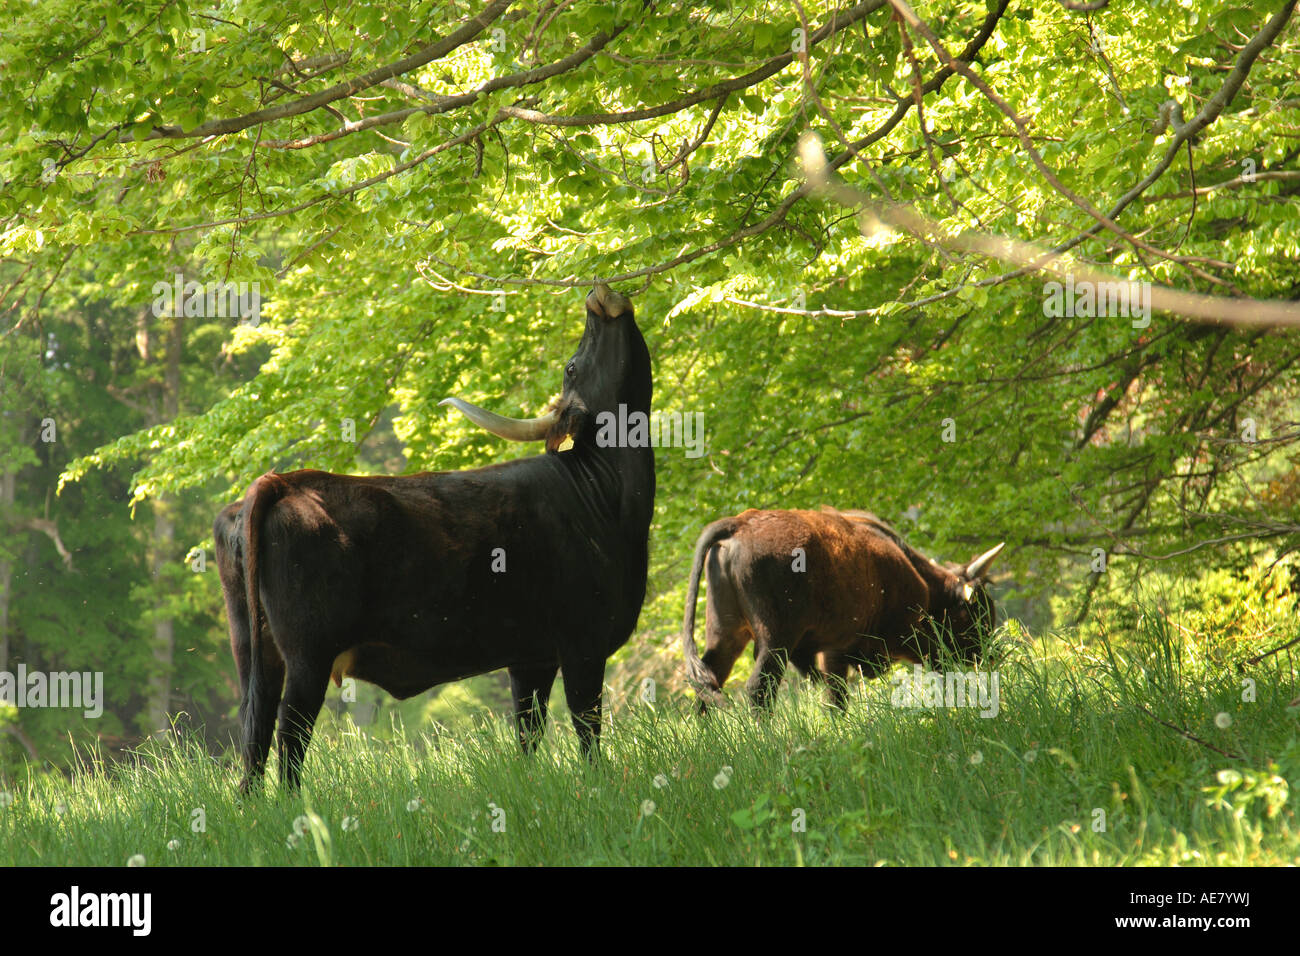 Domestic Cattle Related Keywords & Suggestions - Domestic Cattle Long ...